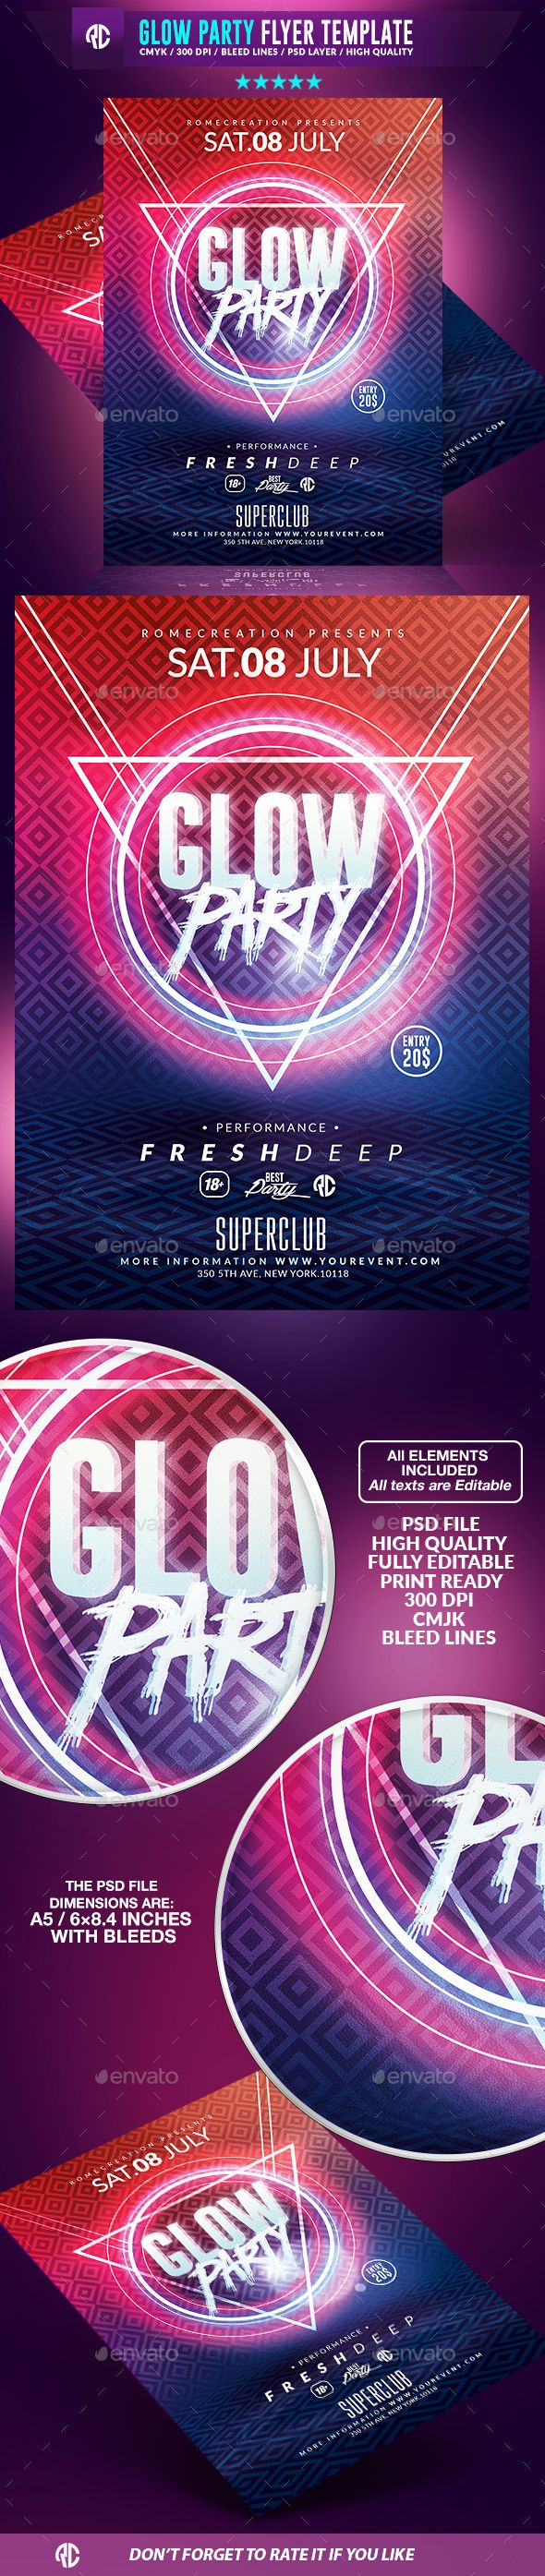 Glow Party | Psd Flyer Template | Creative Flyer |Psd Available. #flyer #template #party Thanks for The Watching !